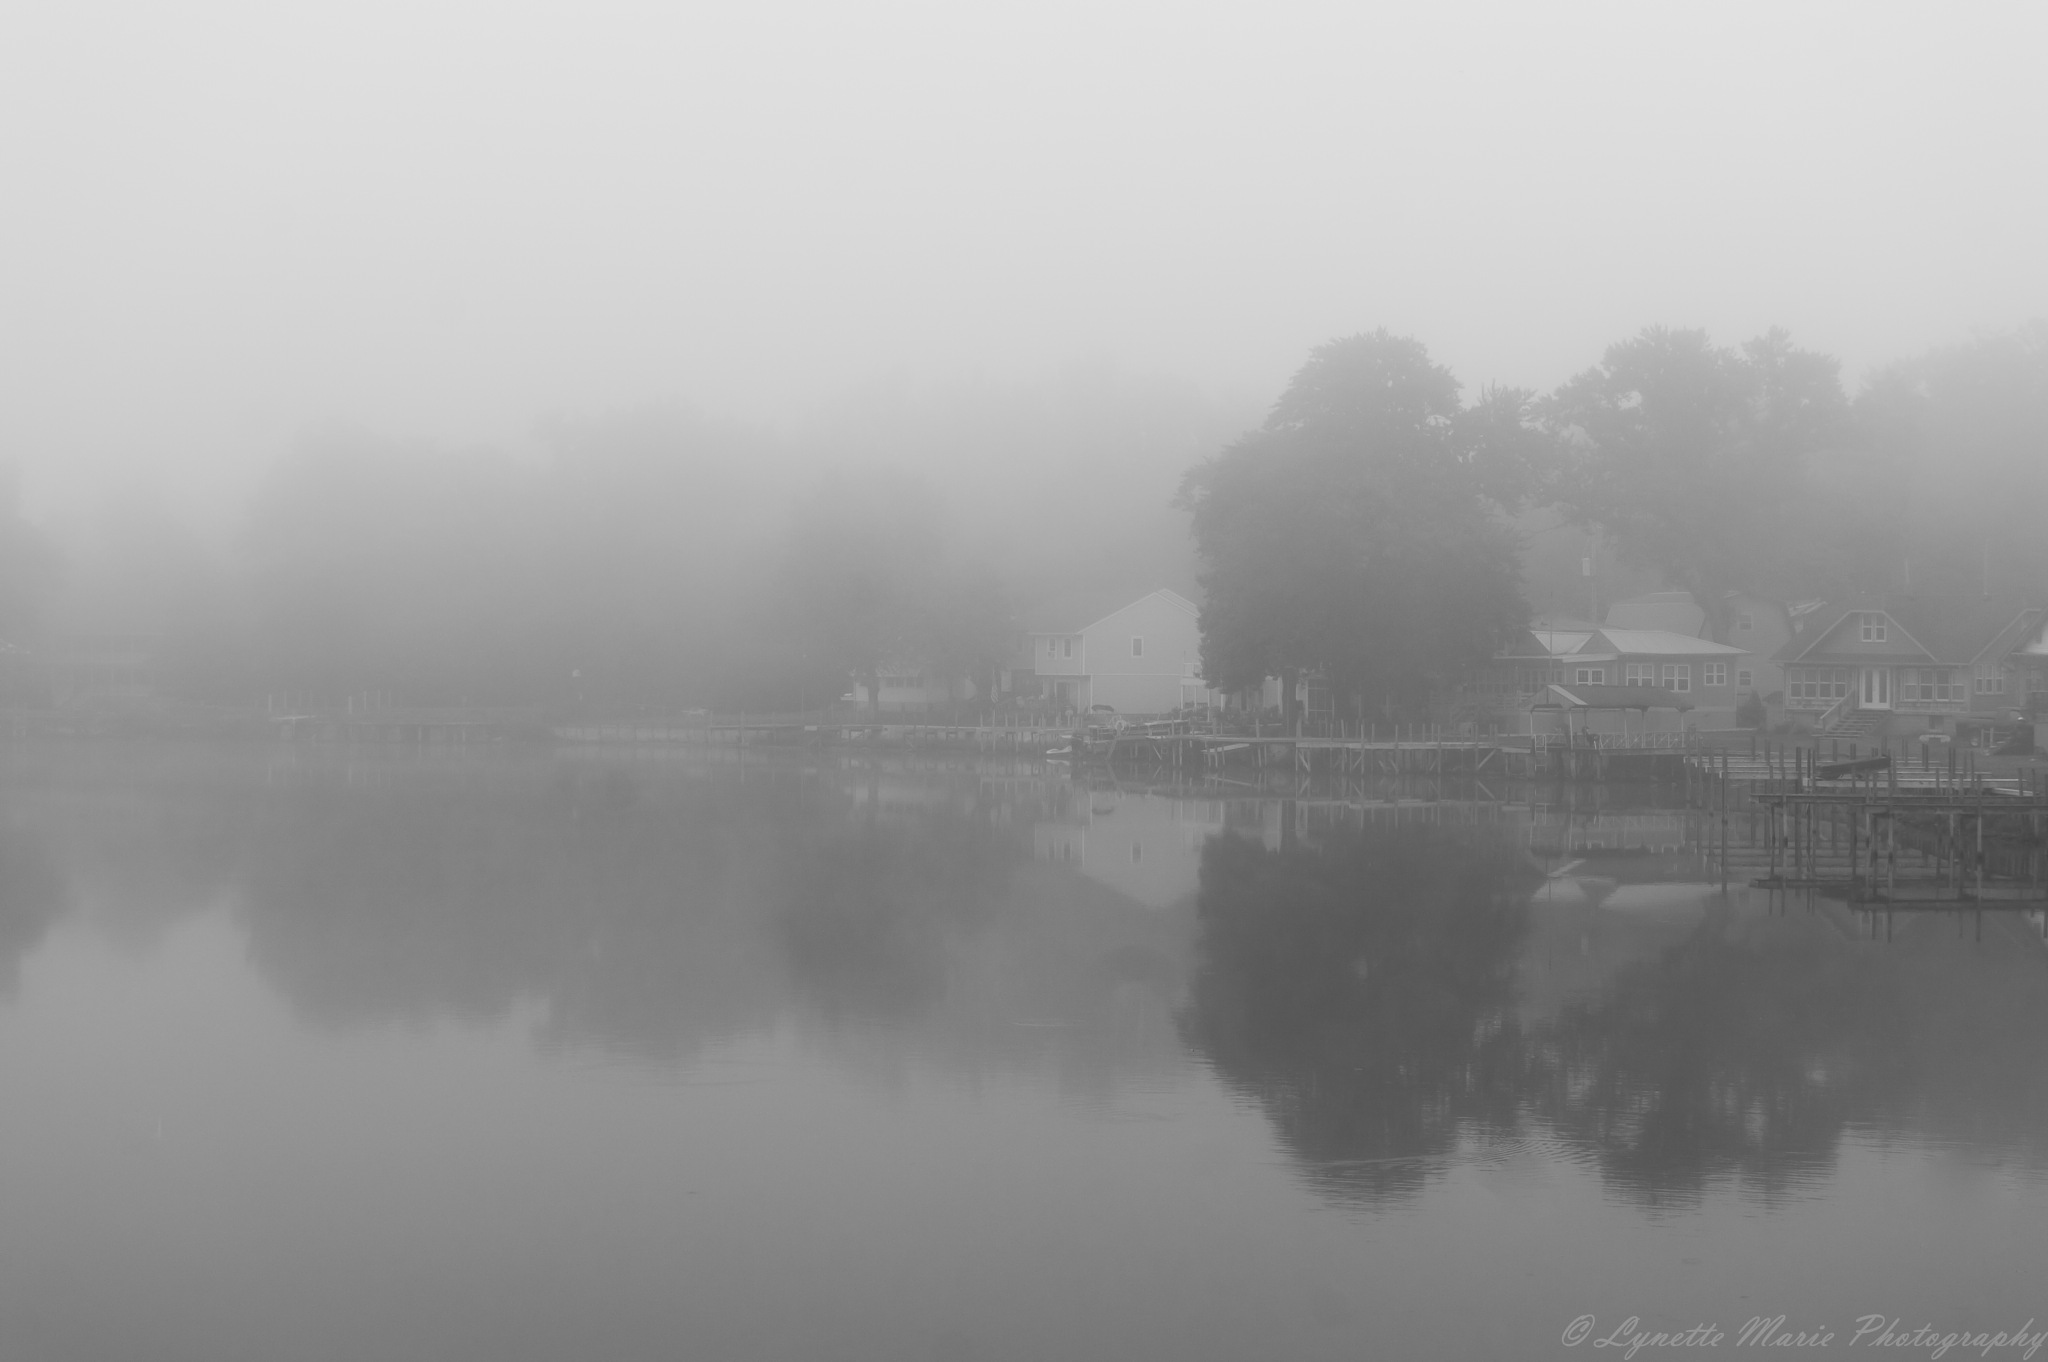 Fog by Lynette M. Feliciano-Justice